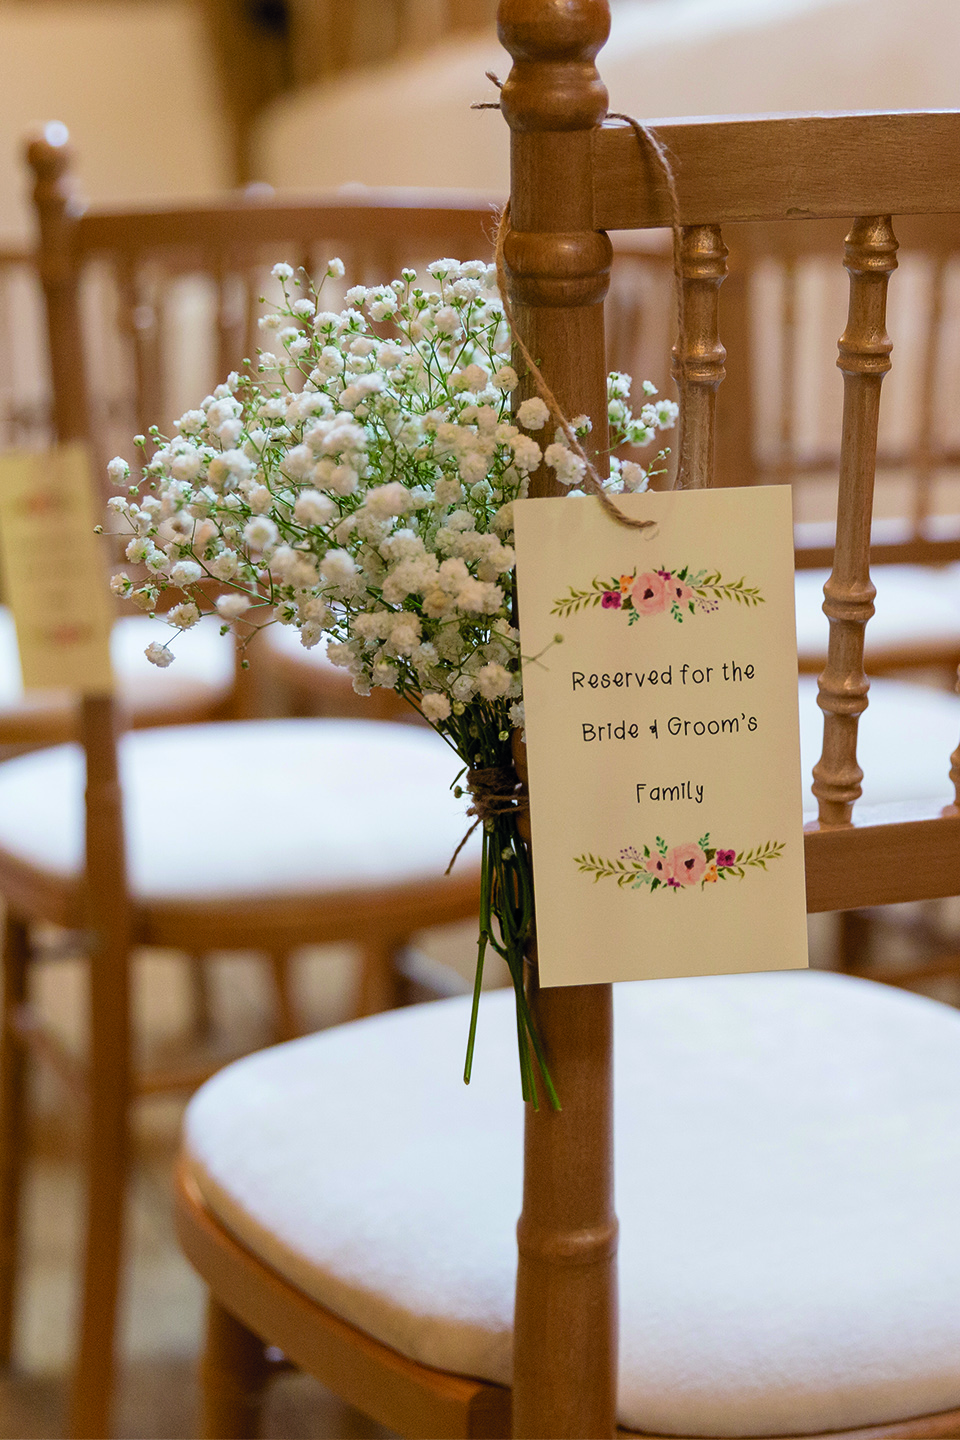 In the Rickety Barn at Bassmead Manor Barns chairs are decorated with floral posies and reserved seating tags